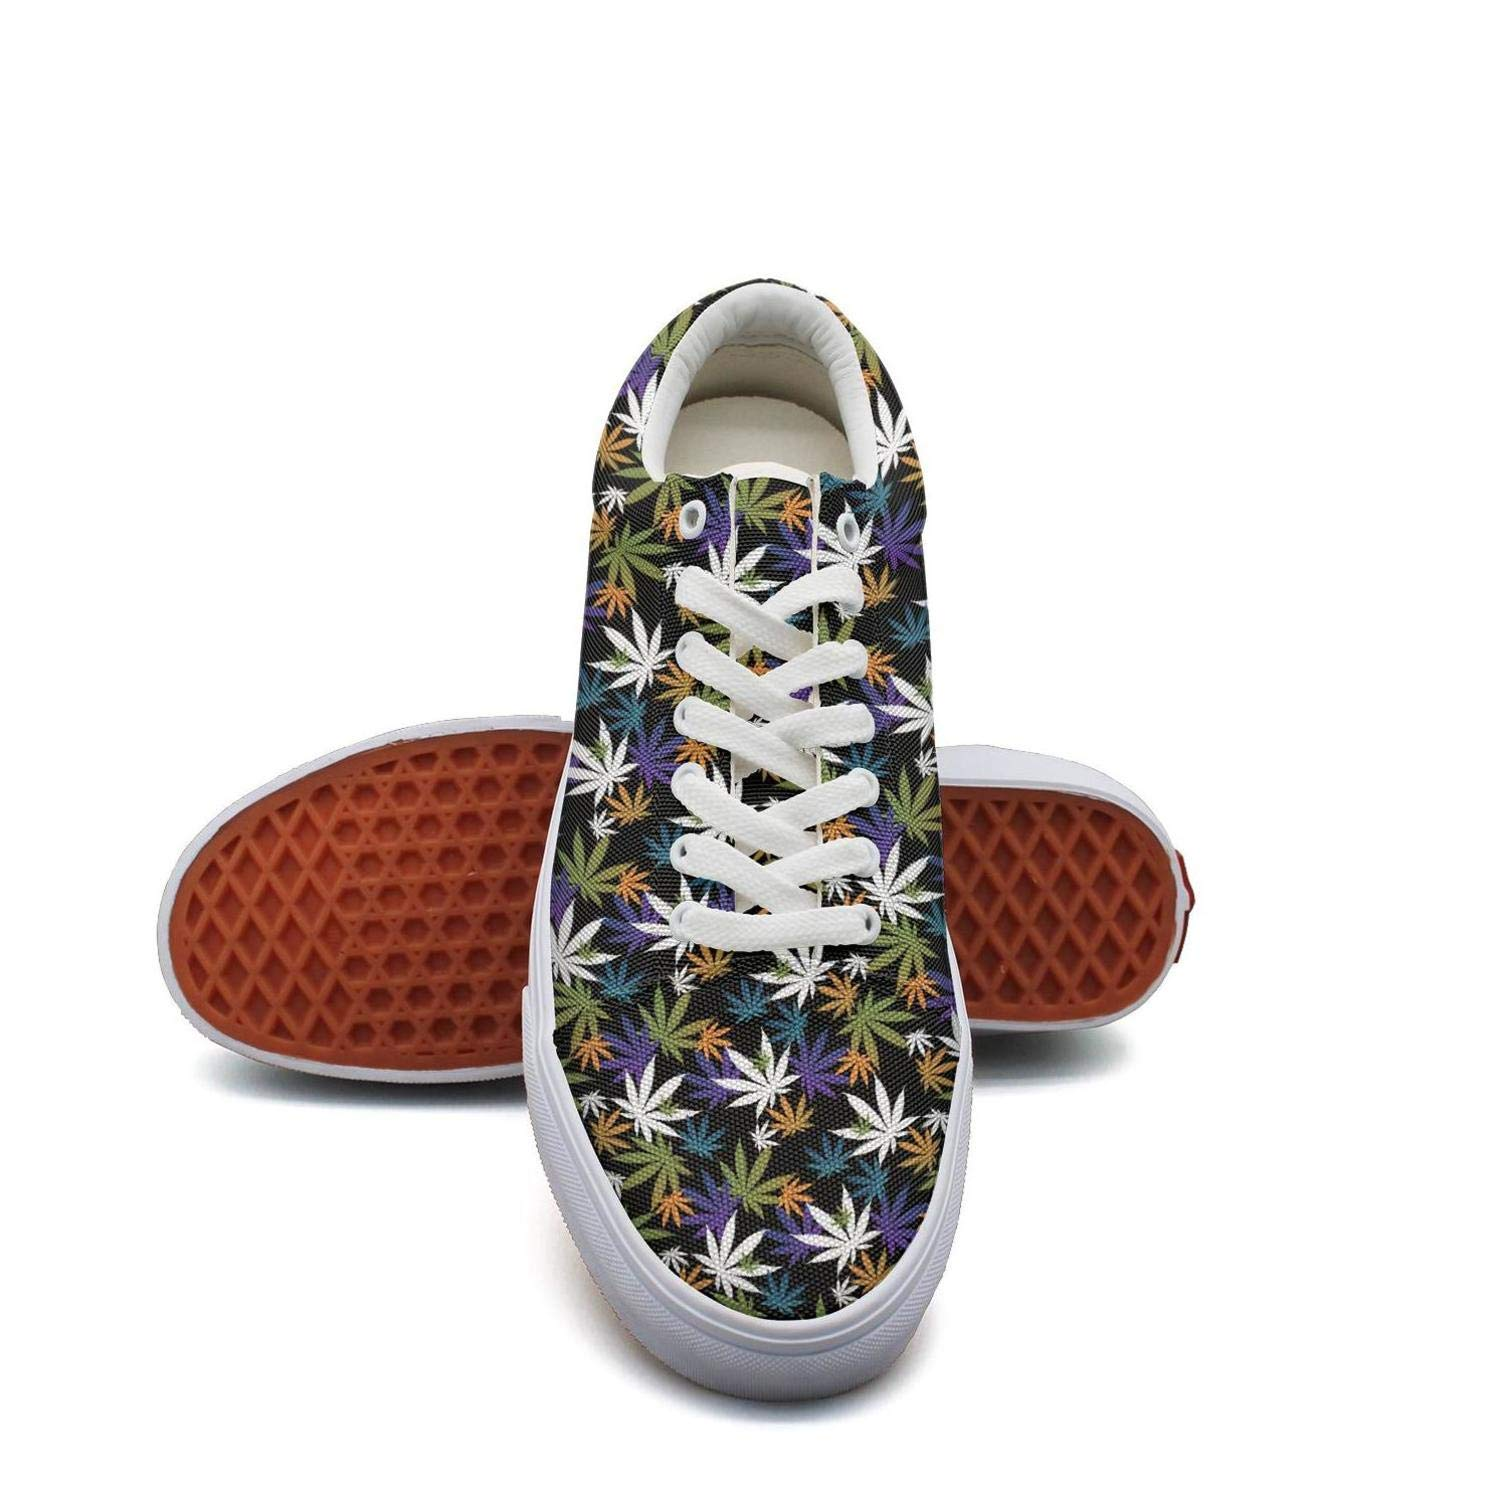 Opr7 Vintage Cannabis Flowers Women Lace-Up Skate Shoes Canvas Upper Loafer Rubber Sole